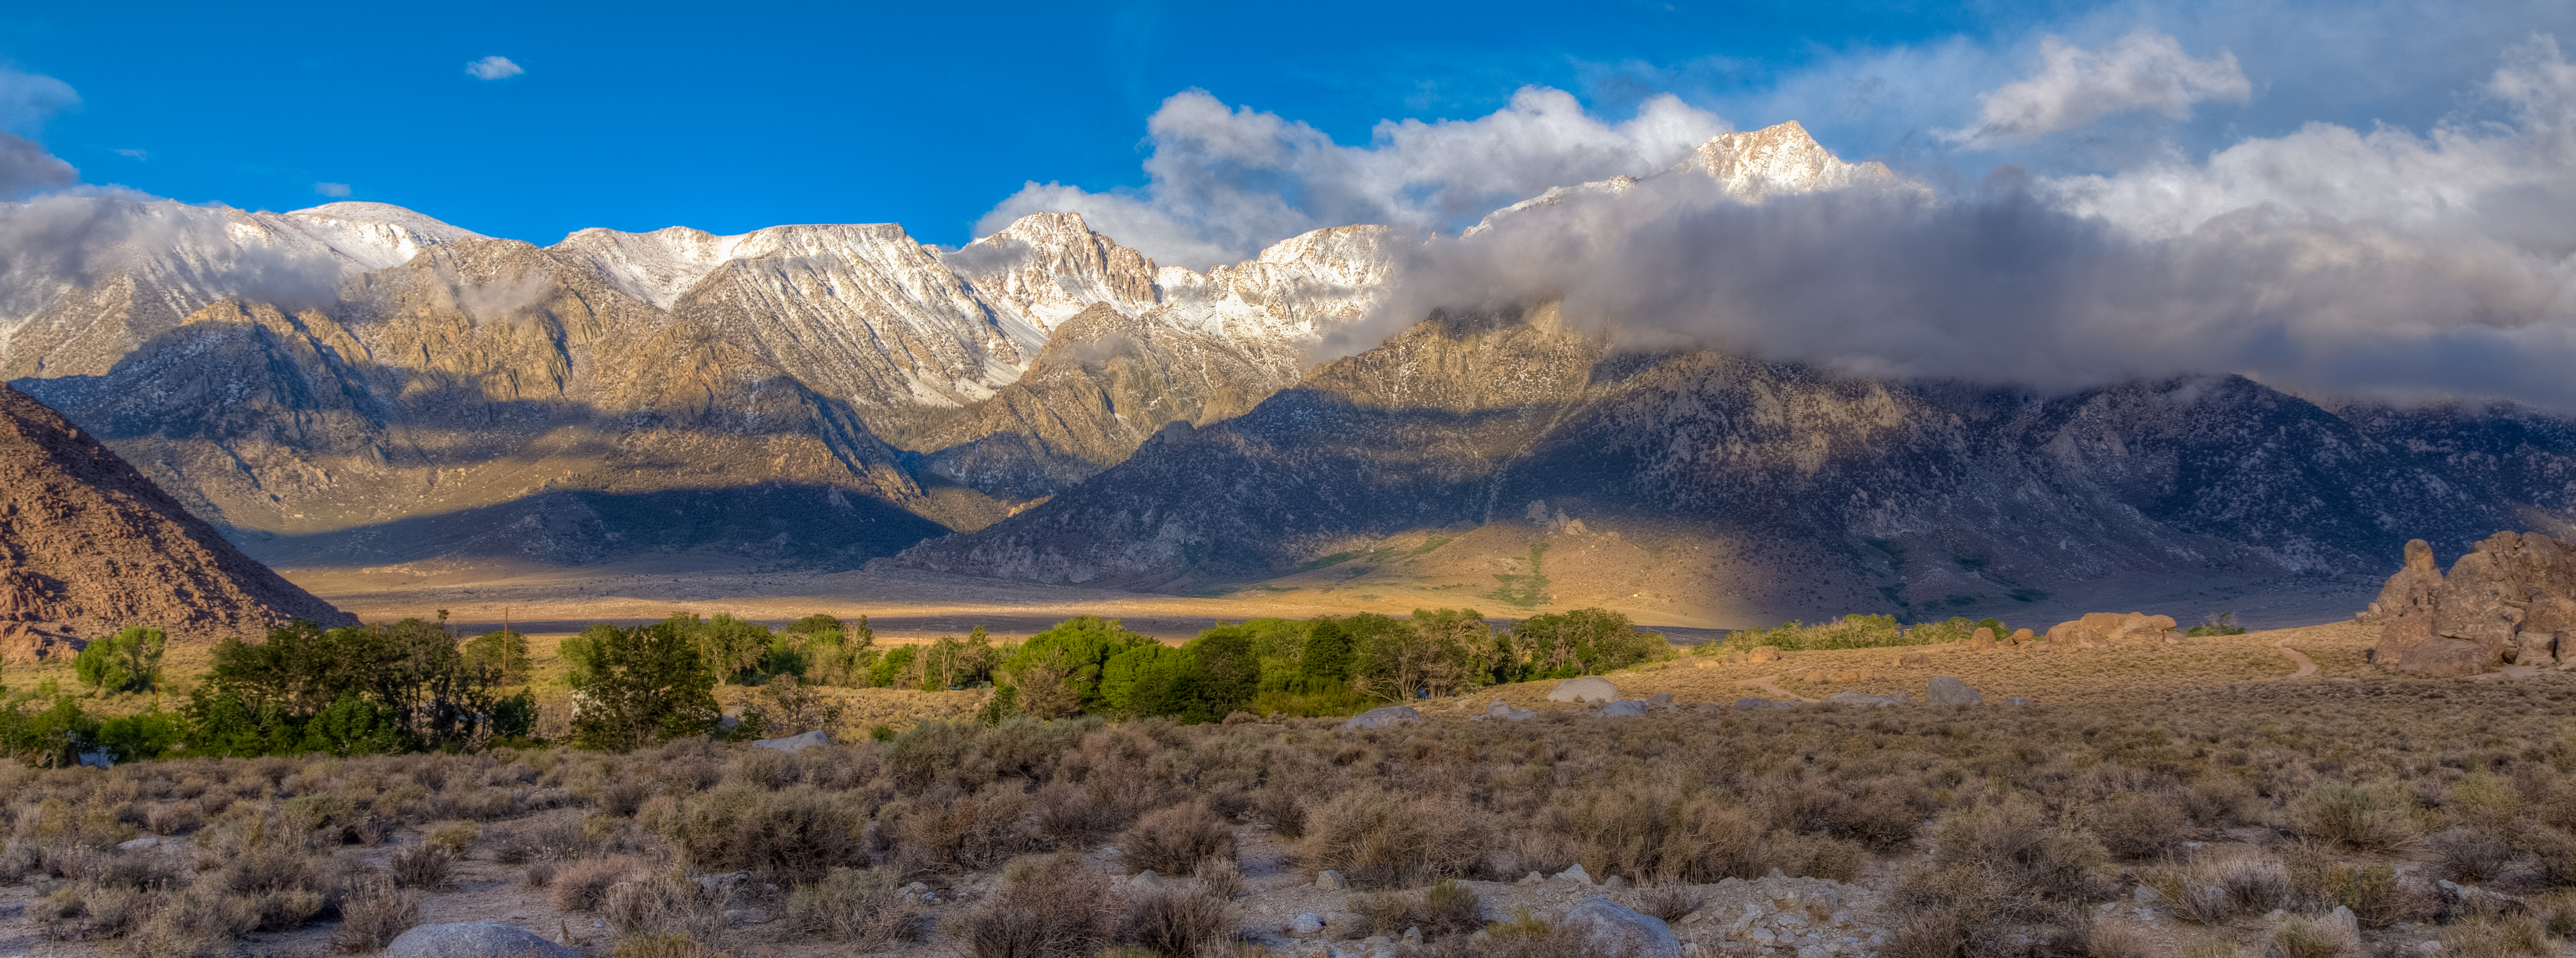 Elevation of Lone Pine, CA, USA - Topographic Map ...